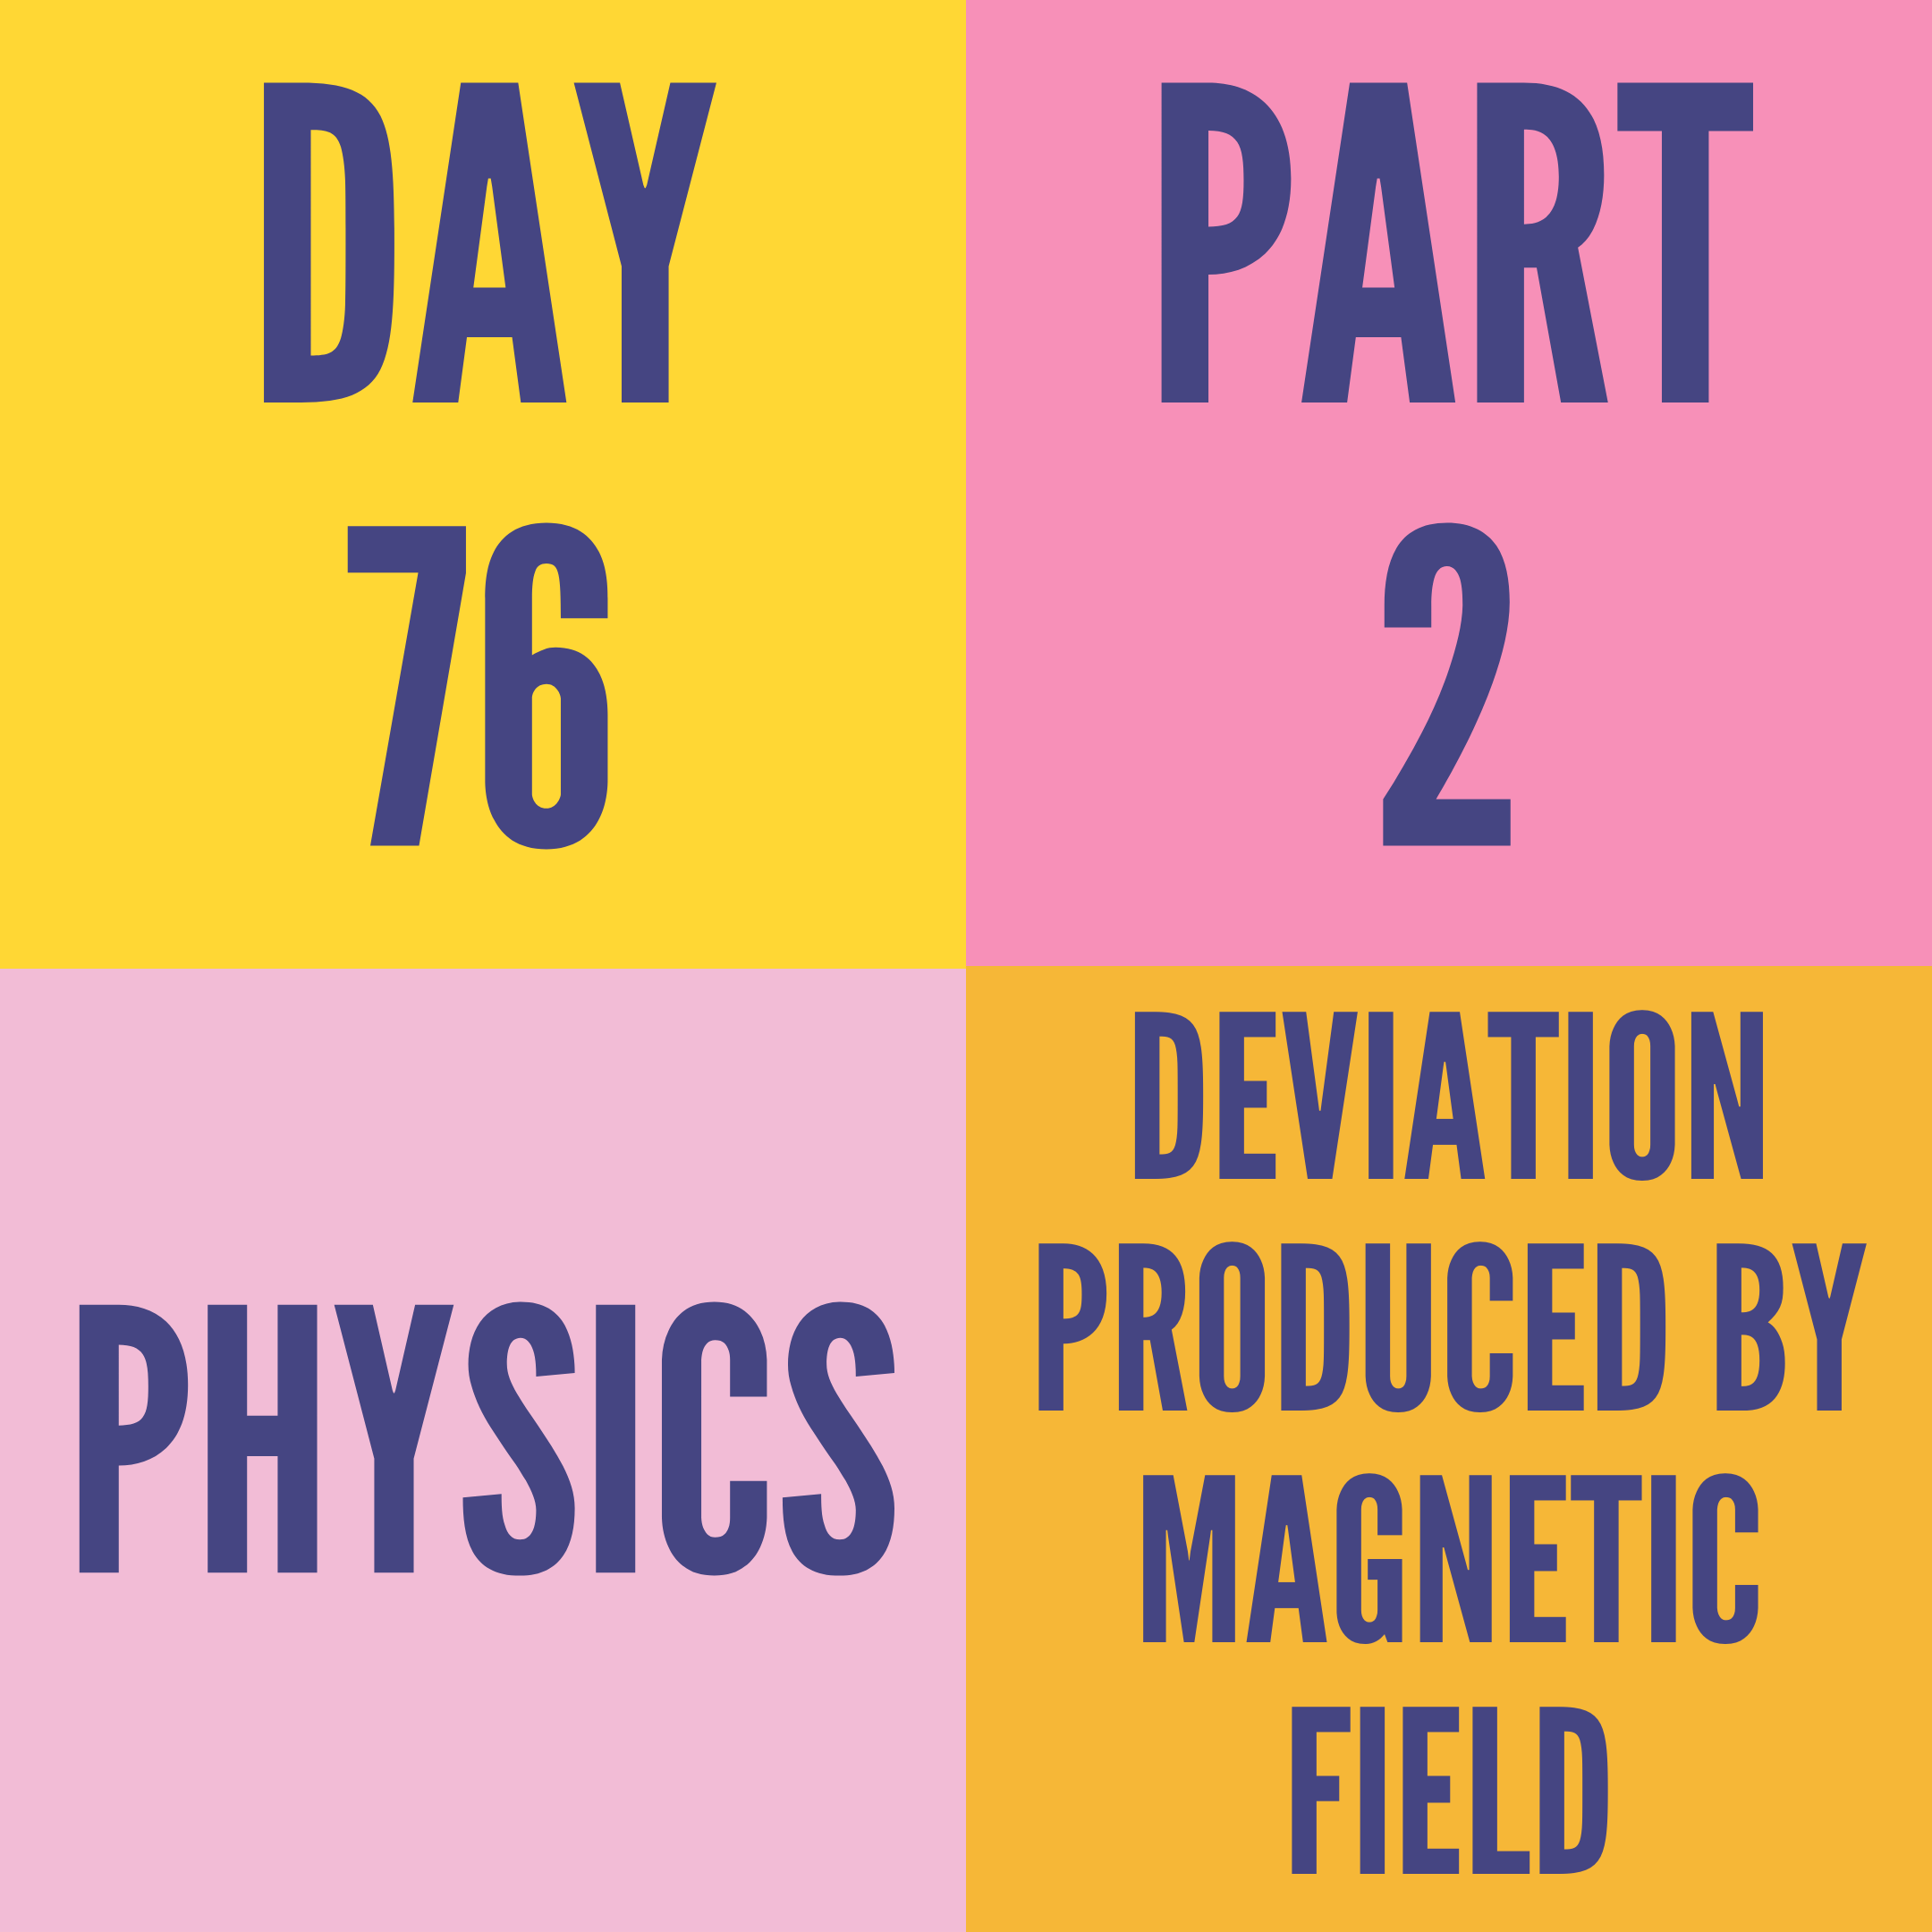 DAY-76 PART-2 DEVIATION PRODUCED BY MAGNETIC FIELD